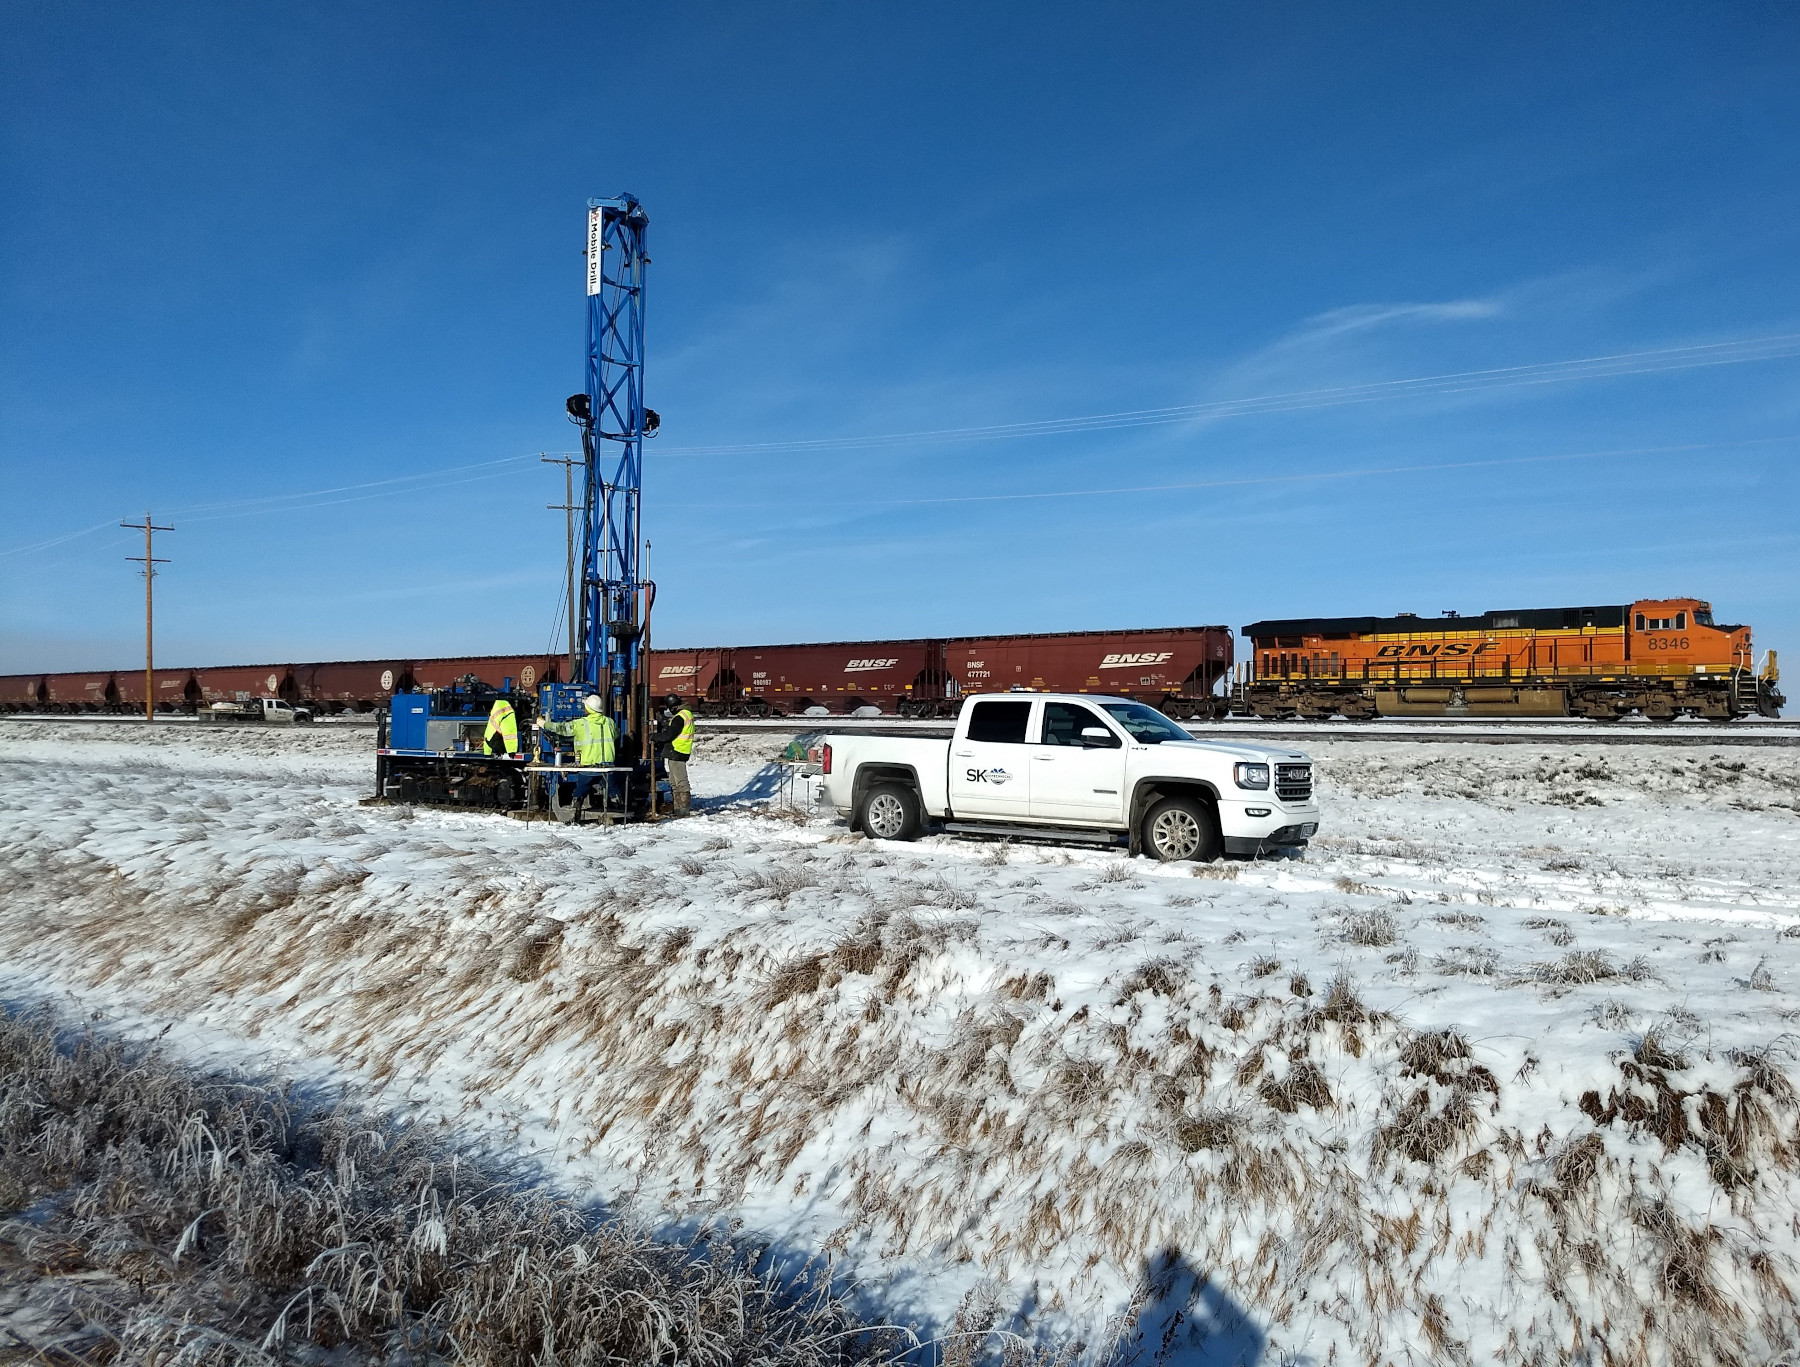 SK Geotechnical drills boring for Chinook East project with B57 Mobil Drillrig in winter